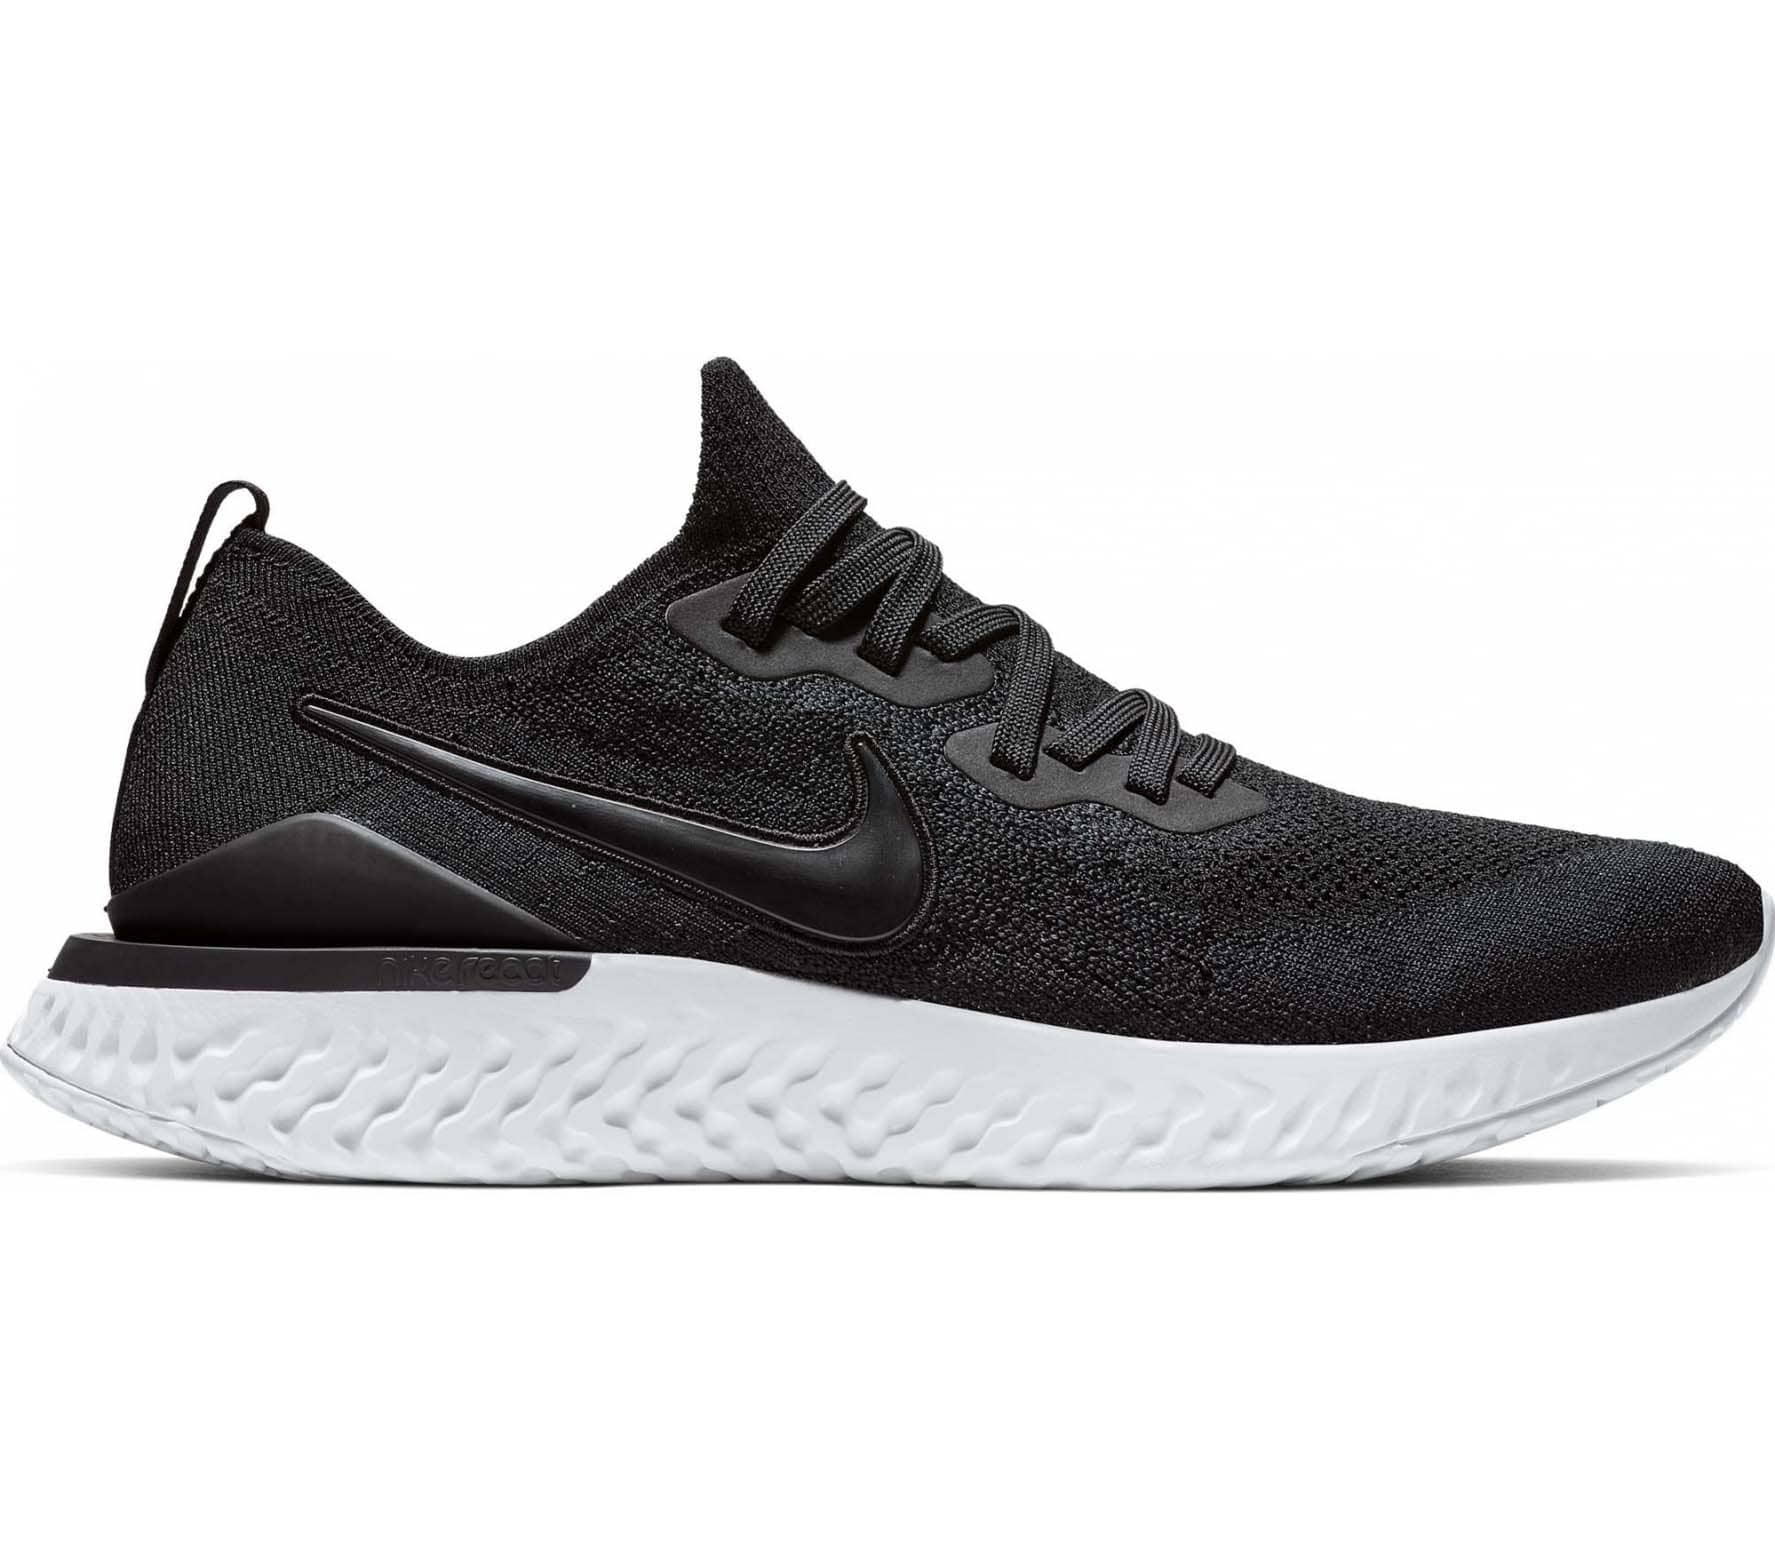 1766e479e Nike - Epic React Flyknit 2 men's running shoes (black/white) - buy ...